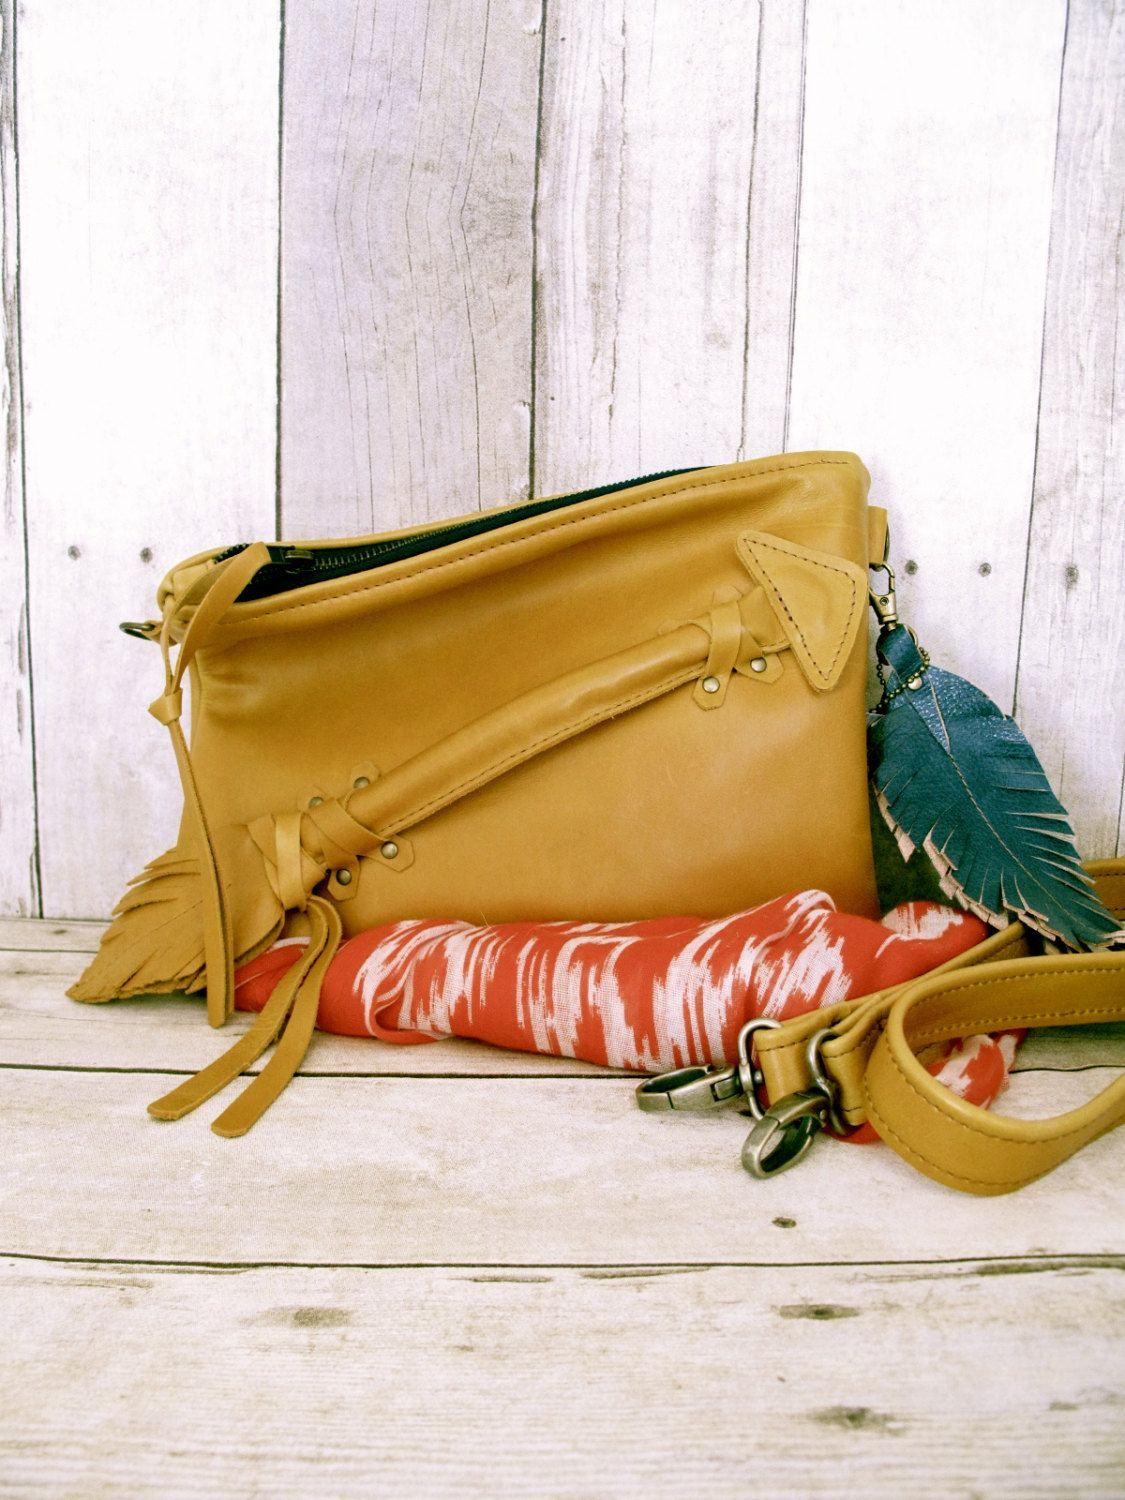 Photo of Borsa in pelle, piccola borsa di cuoio, Cross Body Bag, pochette in, Messenger bag, freccia borsa, sacchetto della chiusura lampo, sacchetto unico, Golden Yellow